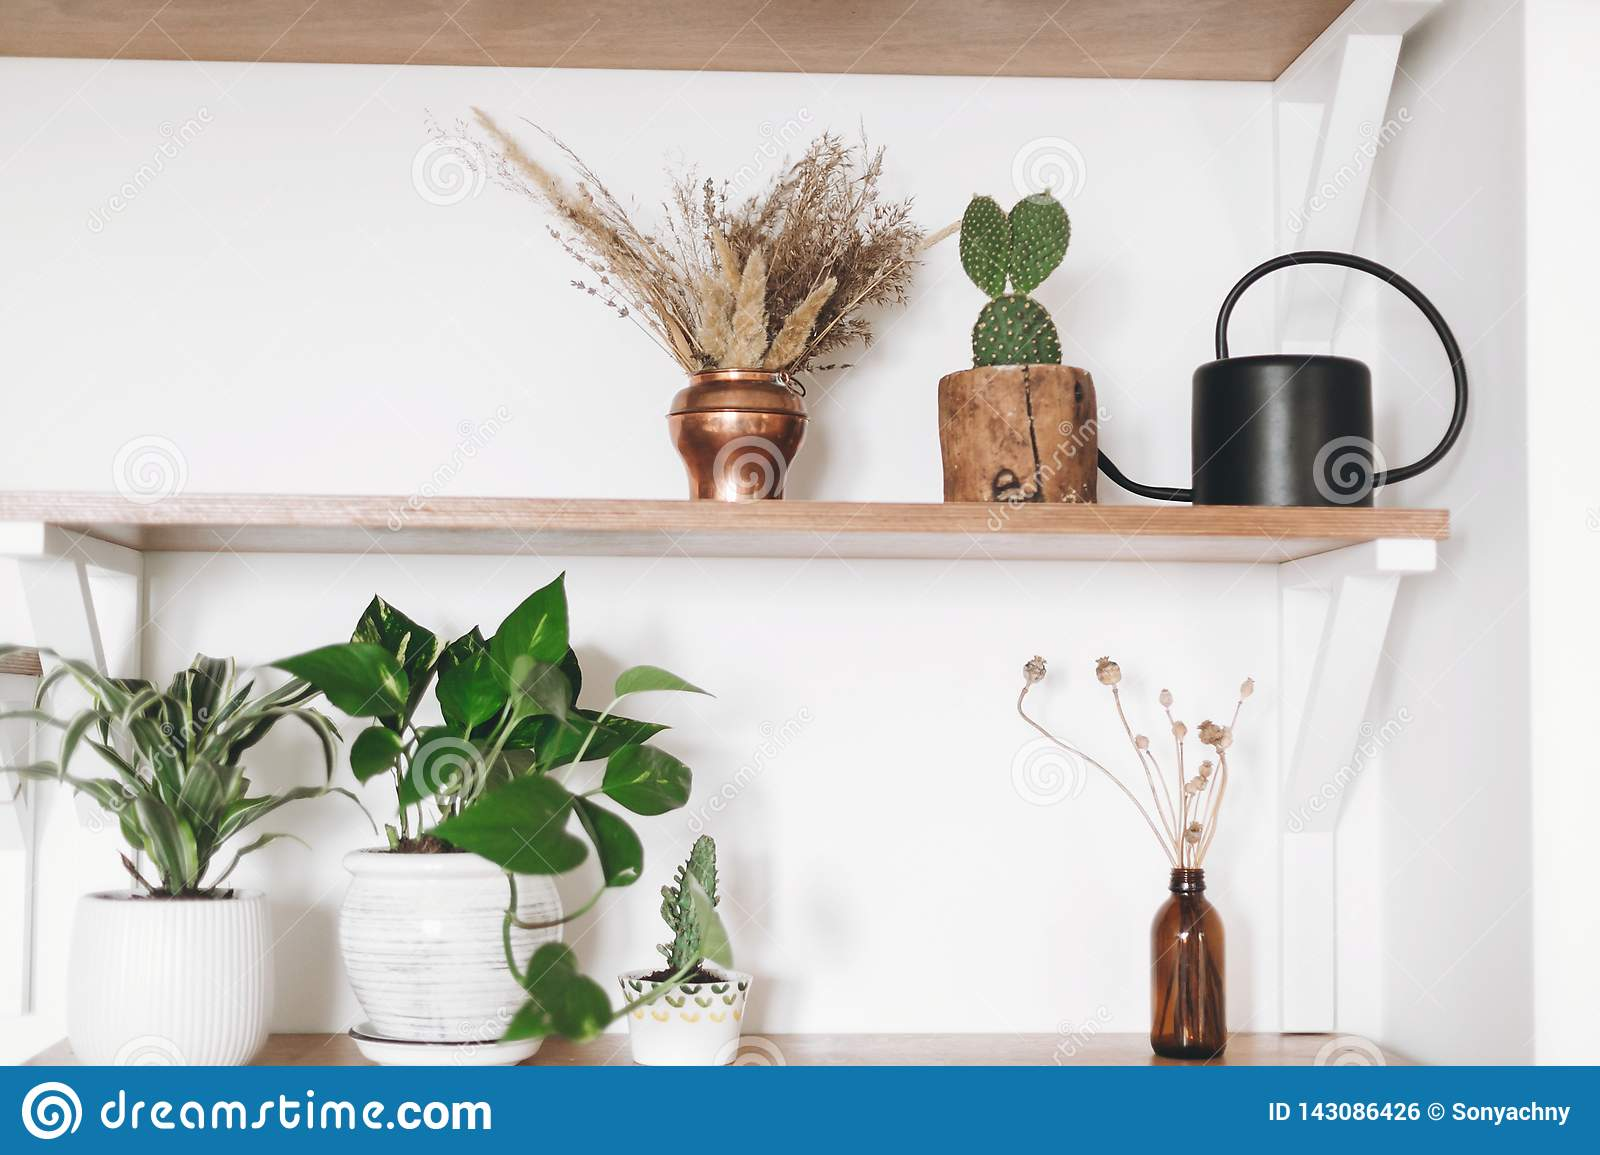 Image of: Stylish Wooden Shelves With Green Plants Black Watering Can Boho Wildflowers Modern Hipster Room Decor Cactus Epipremnum Stock Photo Image Of Interior Gardening 143086426